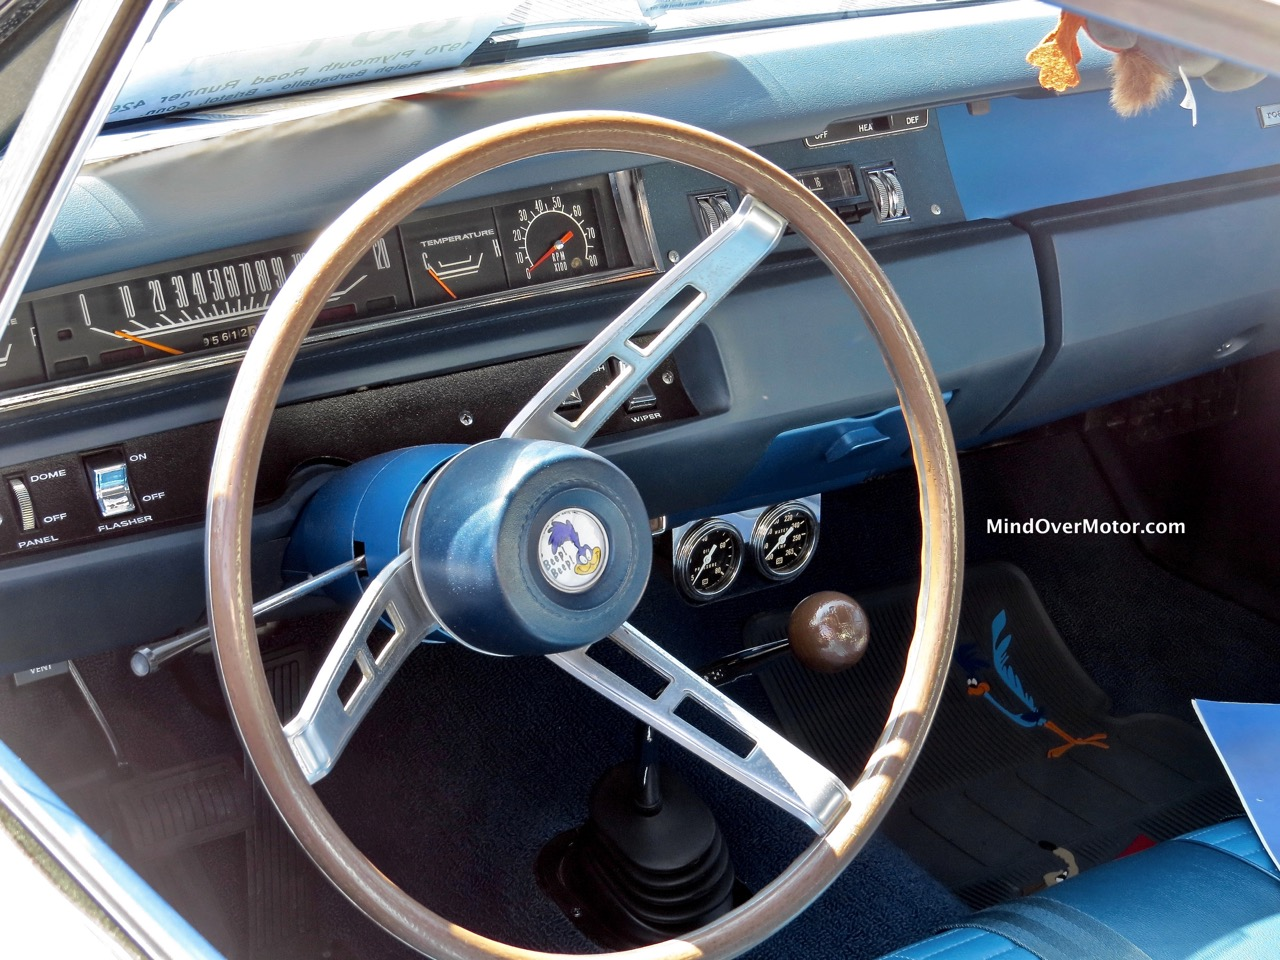 1969 M Code 4 Speed Road Runner Interior